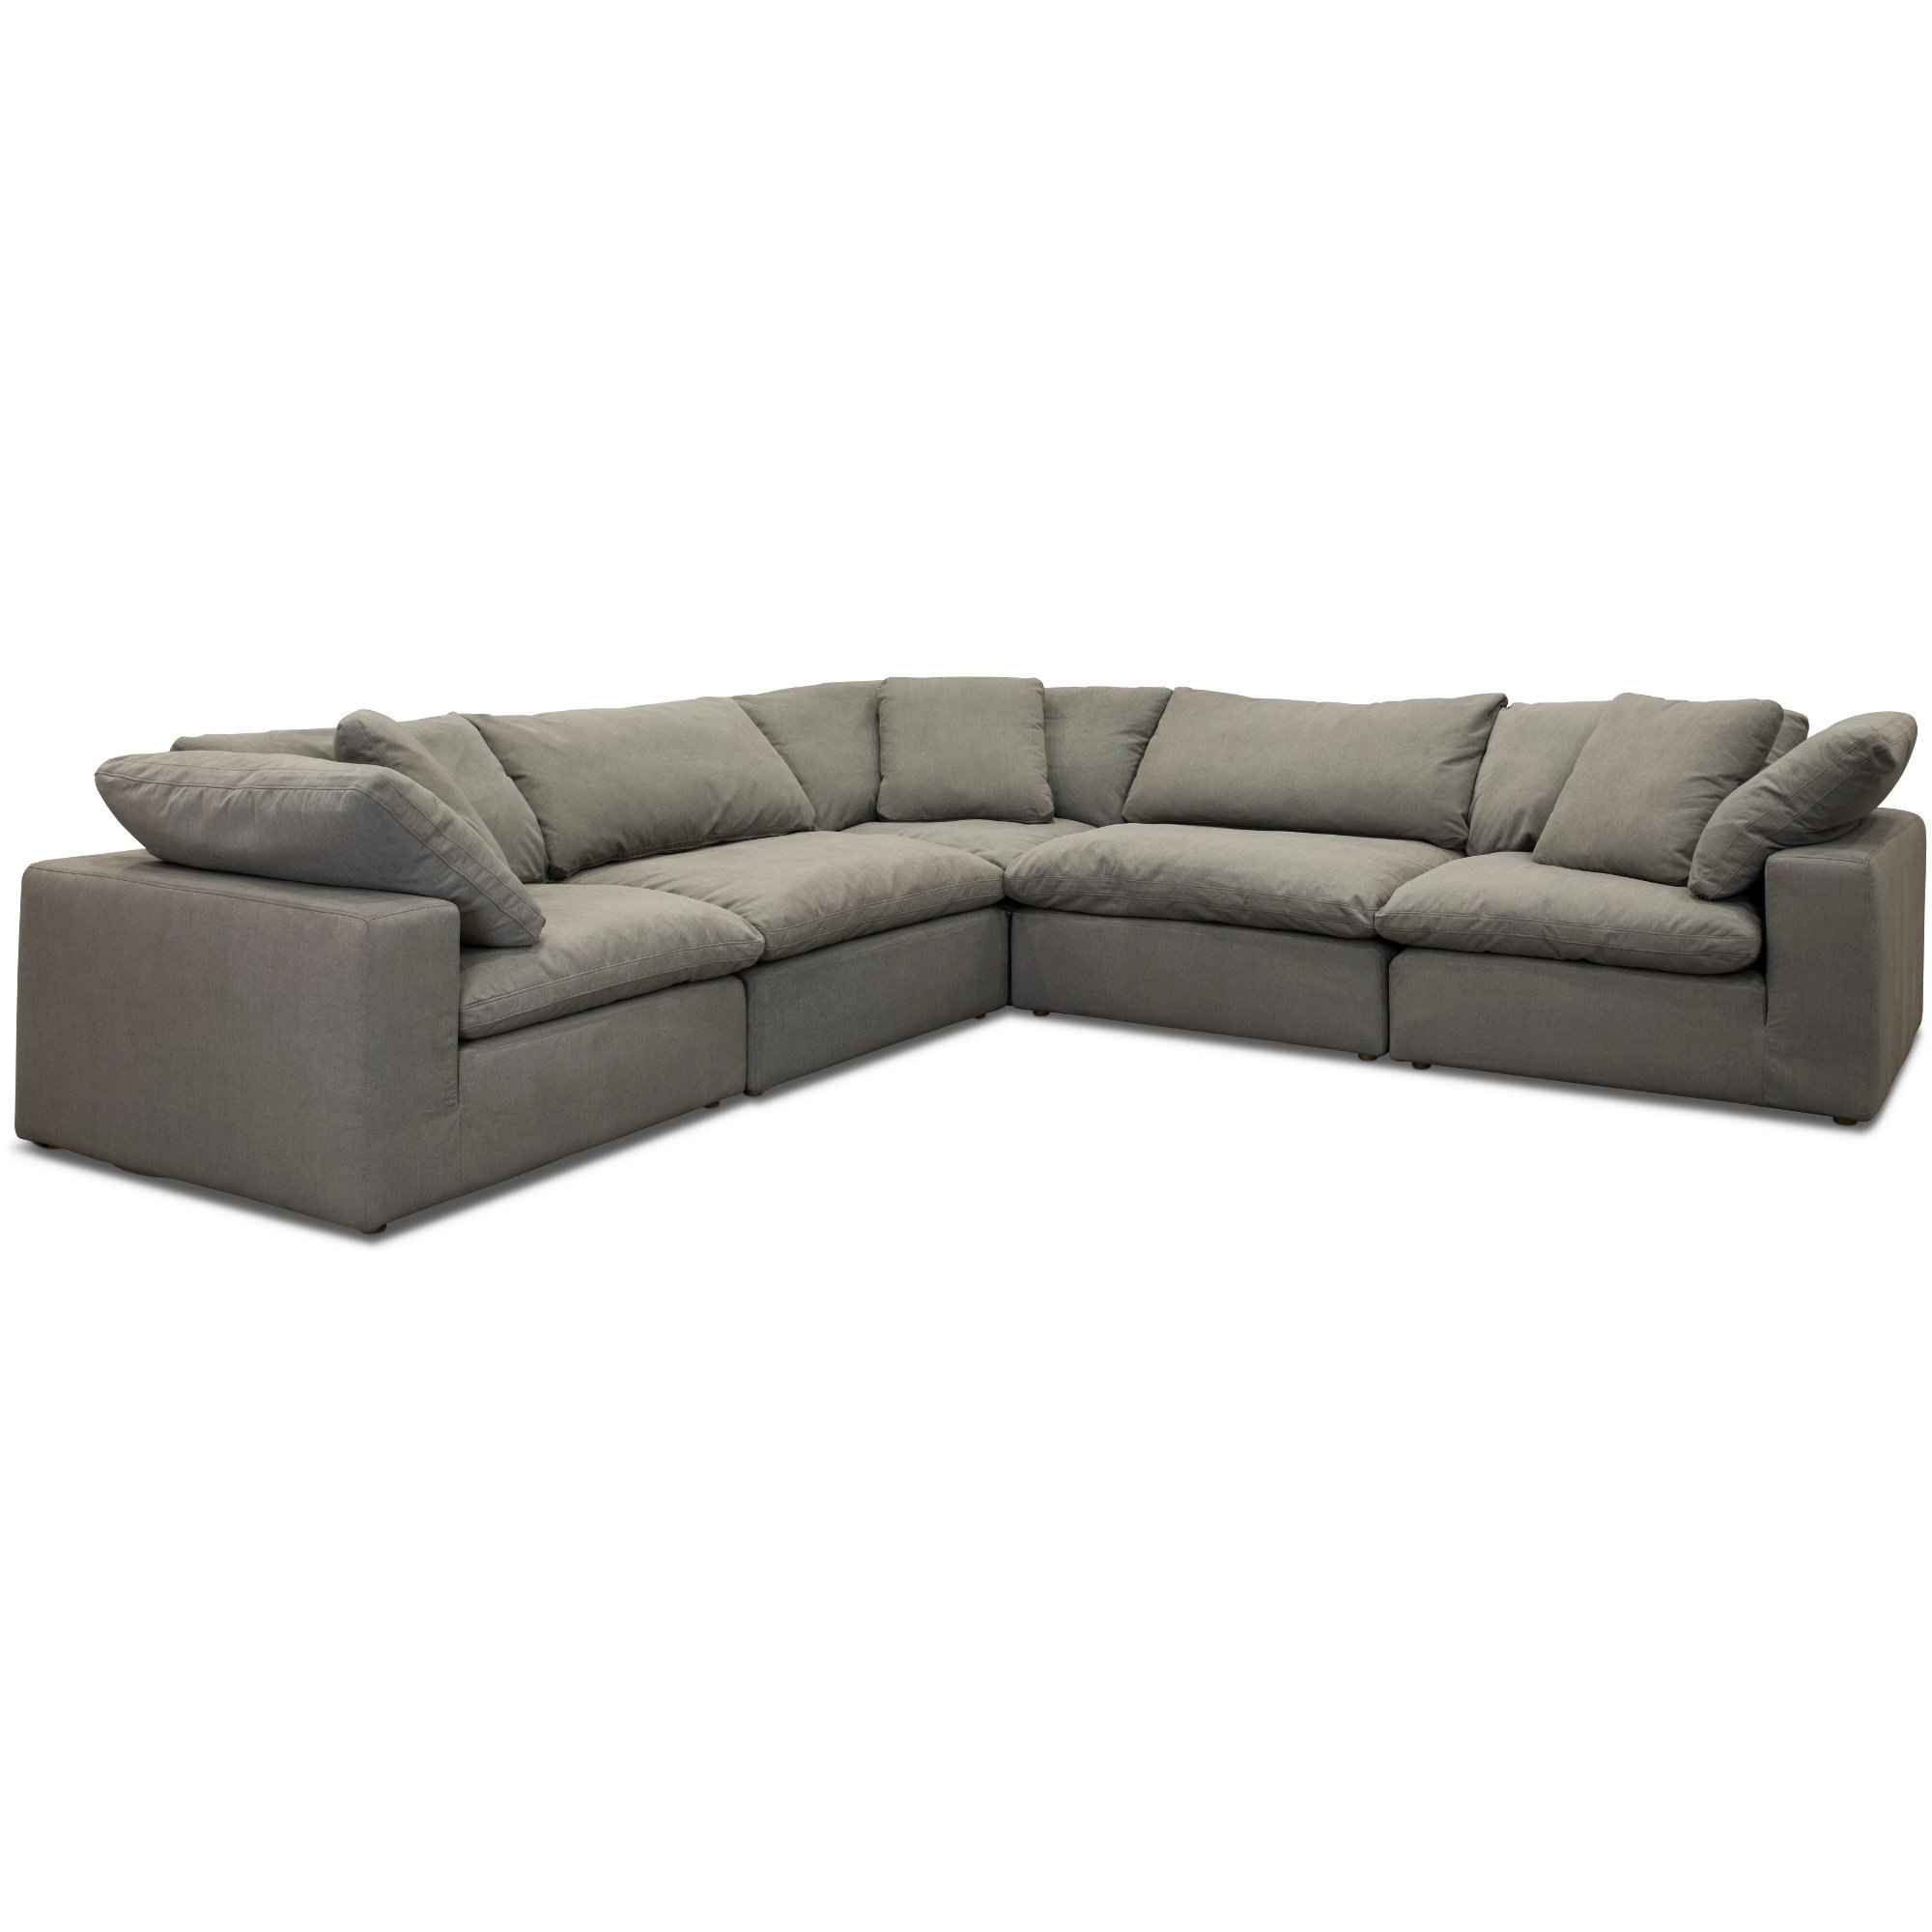 Perfect Product Image Gennaro Pc Lear Sectional Lear Living Rooms Throughout Latest Tenny Dark Grey 2 Piece Left Facing Chaise Sectionals With 2 Headrest (View 15 of 20)